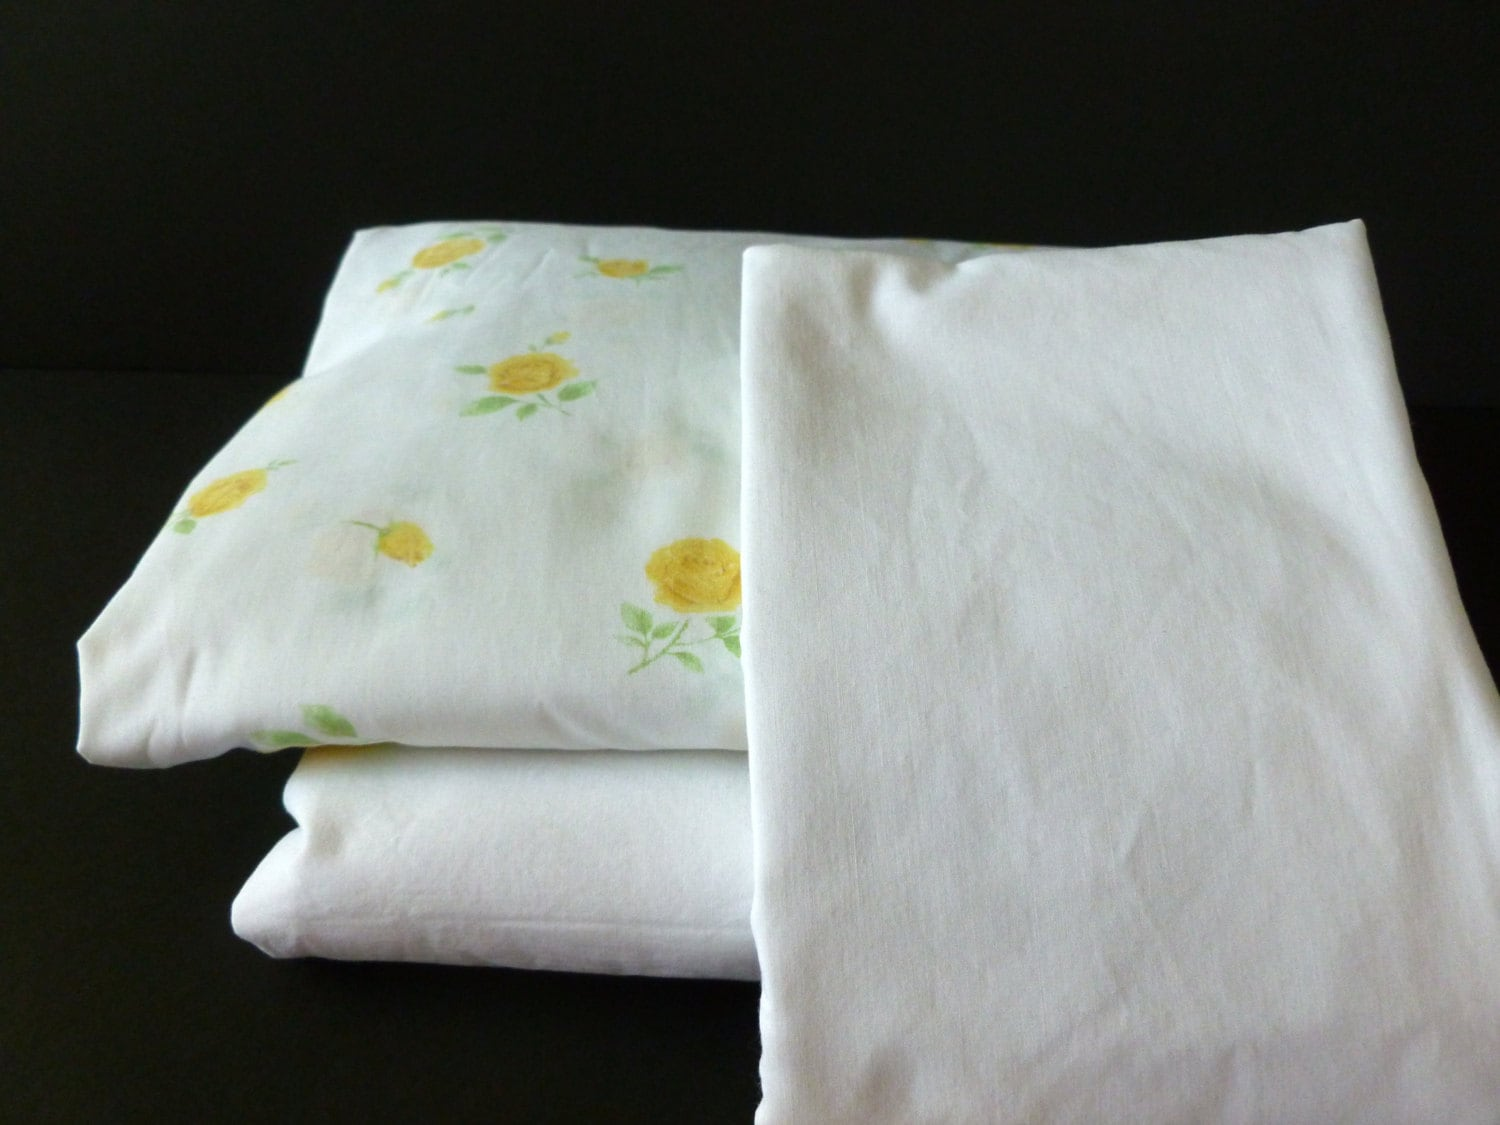 Vintage cannon percale sheets made in usa dating